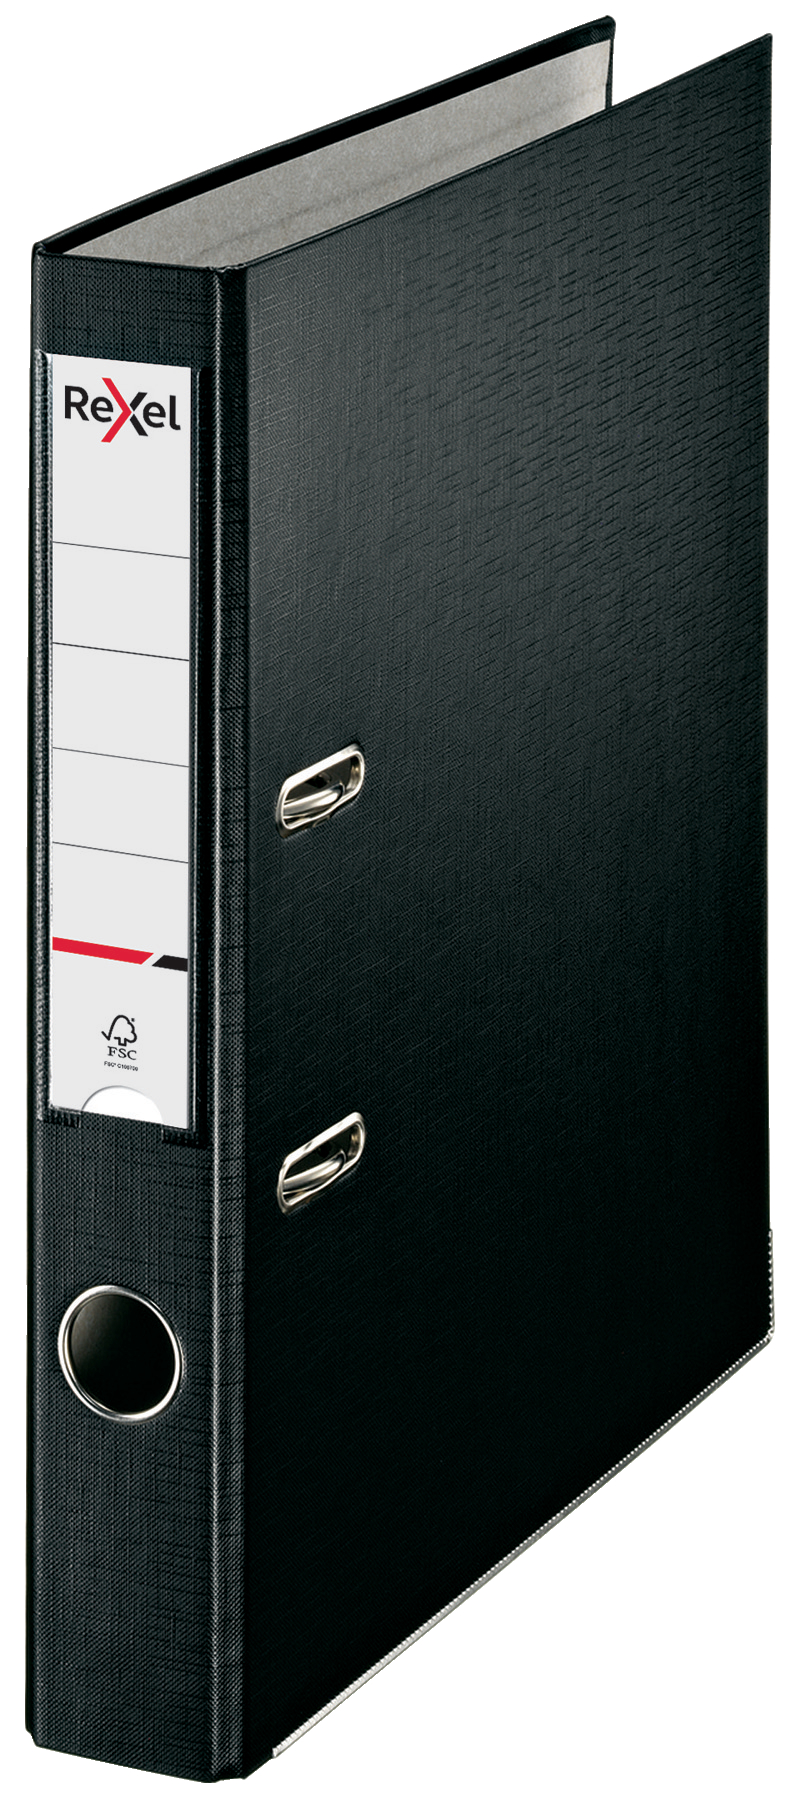 Lever Arch Files Rexel Lever Arch File ECO Polypropylene A4 50mm Spine Width Black (Pack 25)